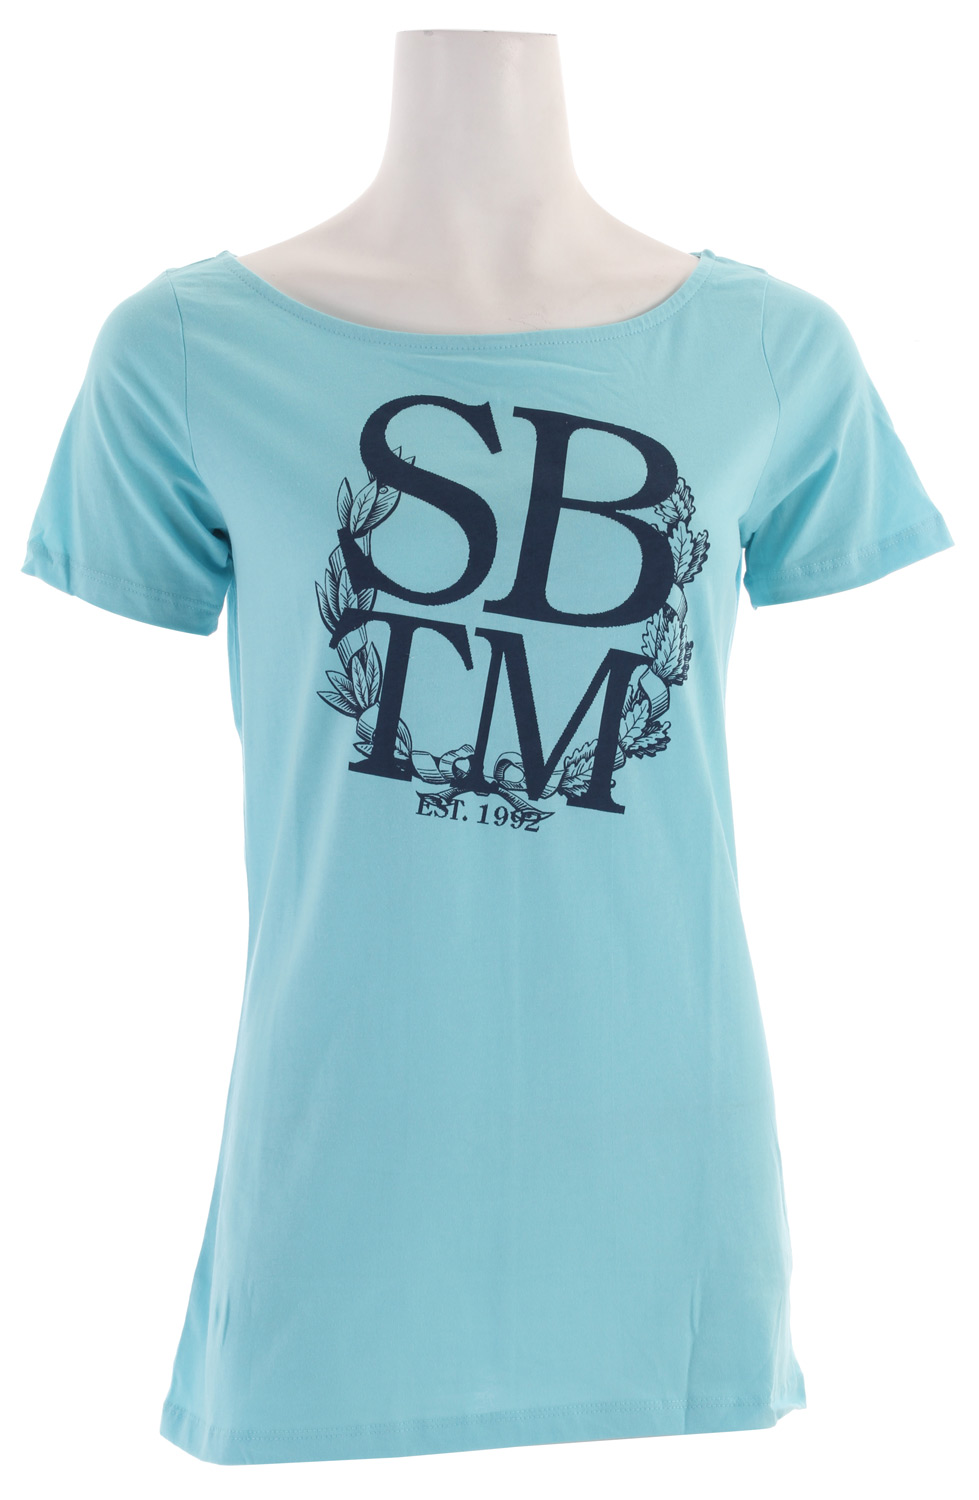 Special Blend Up Grade T-Shirt - $11.55